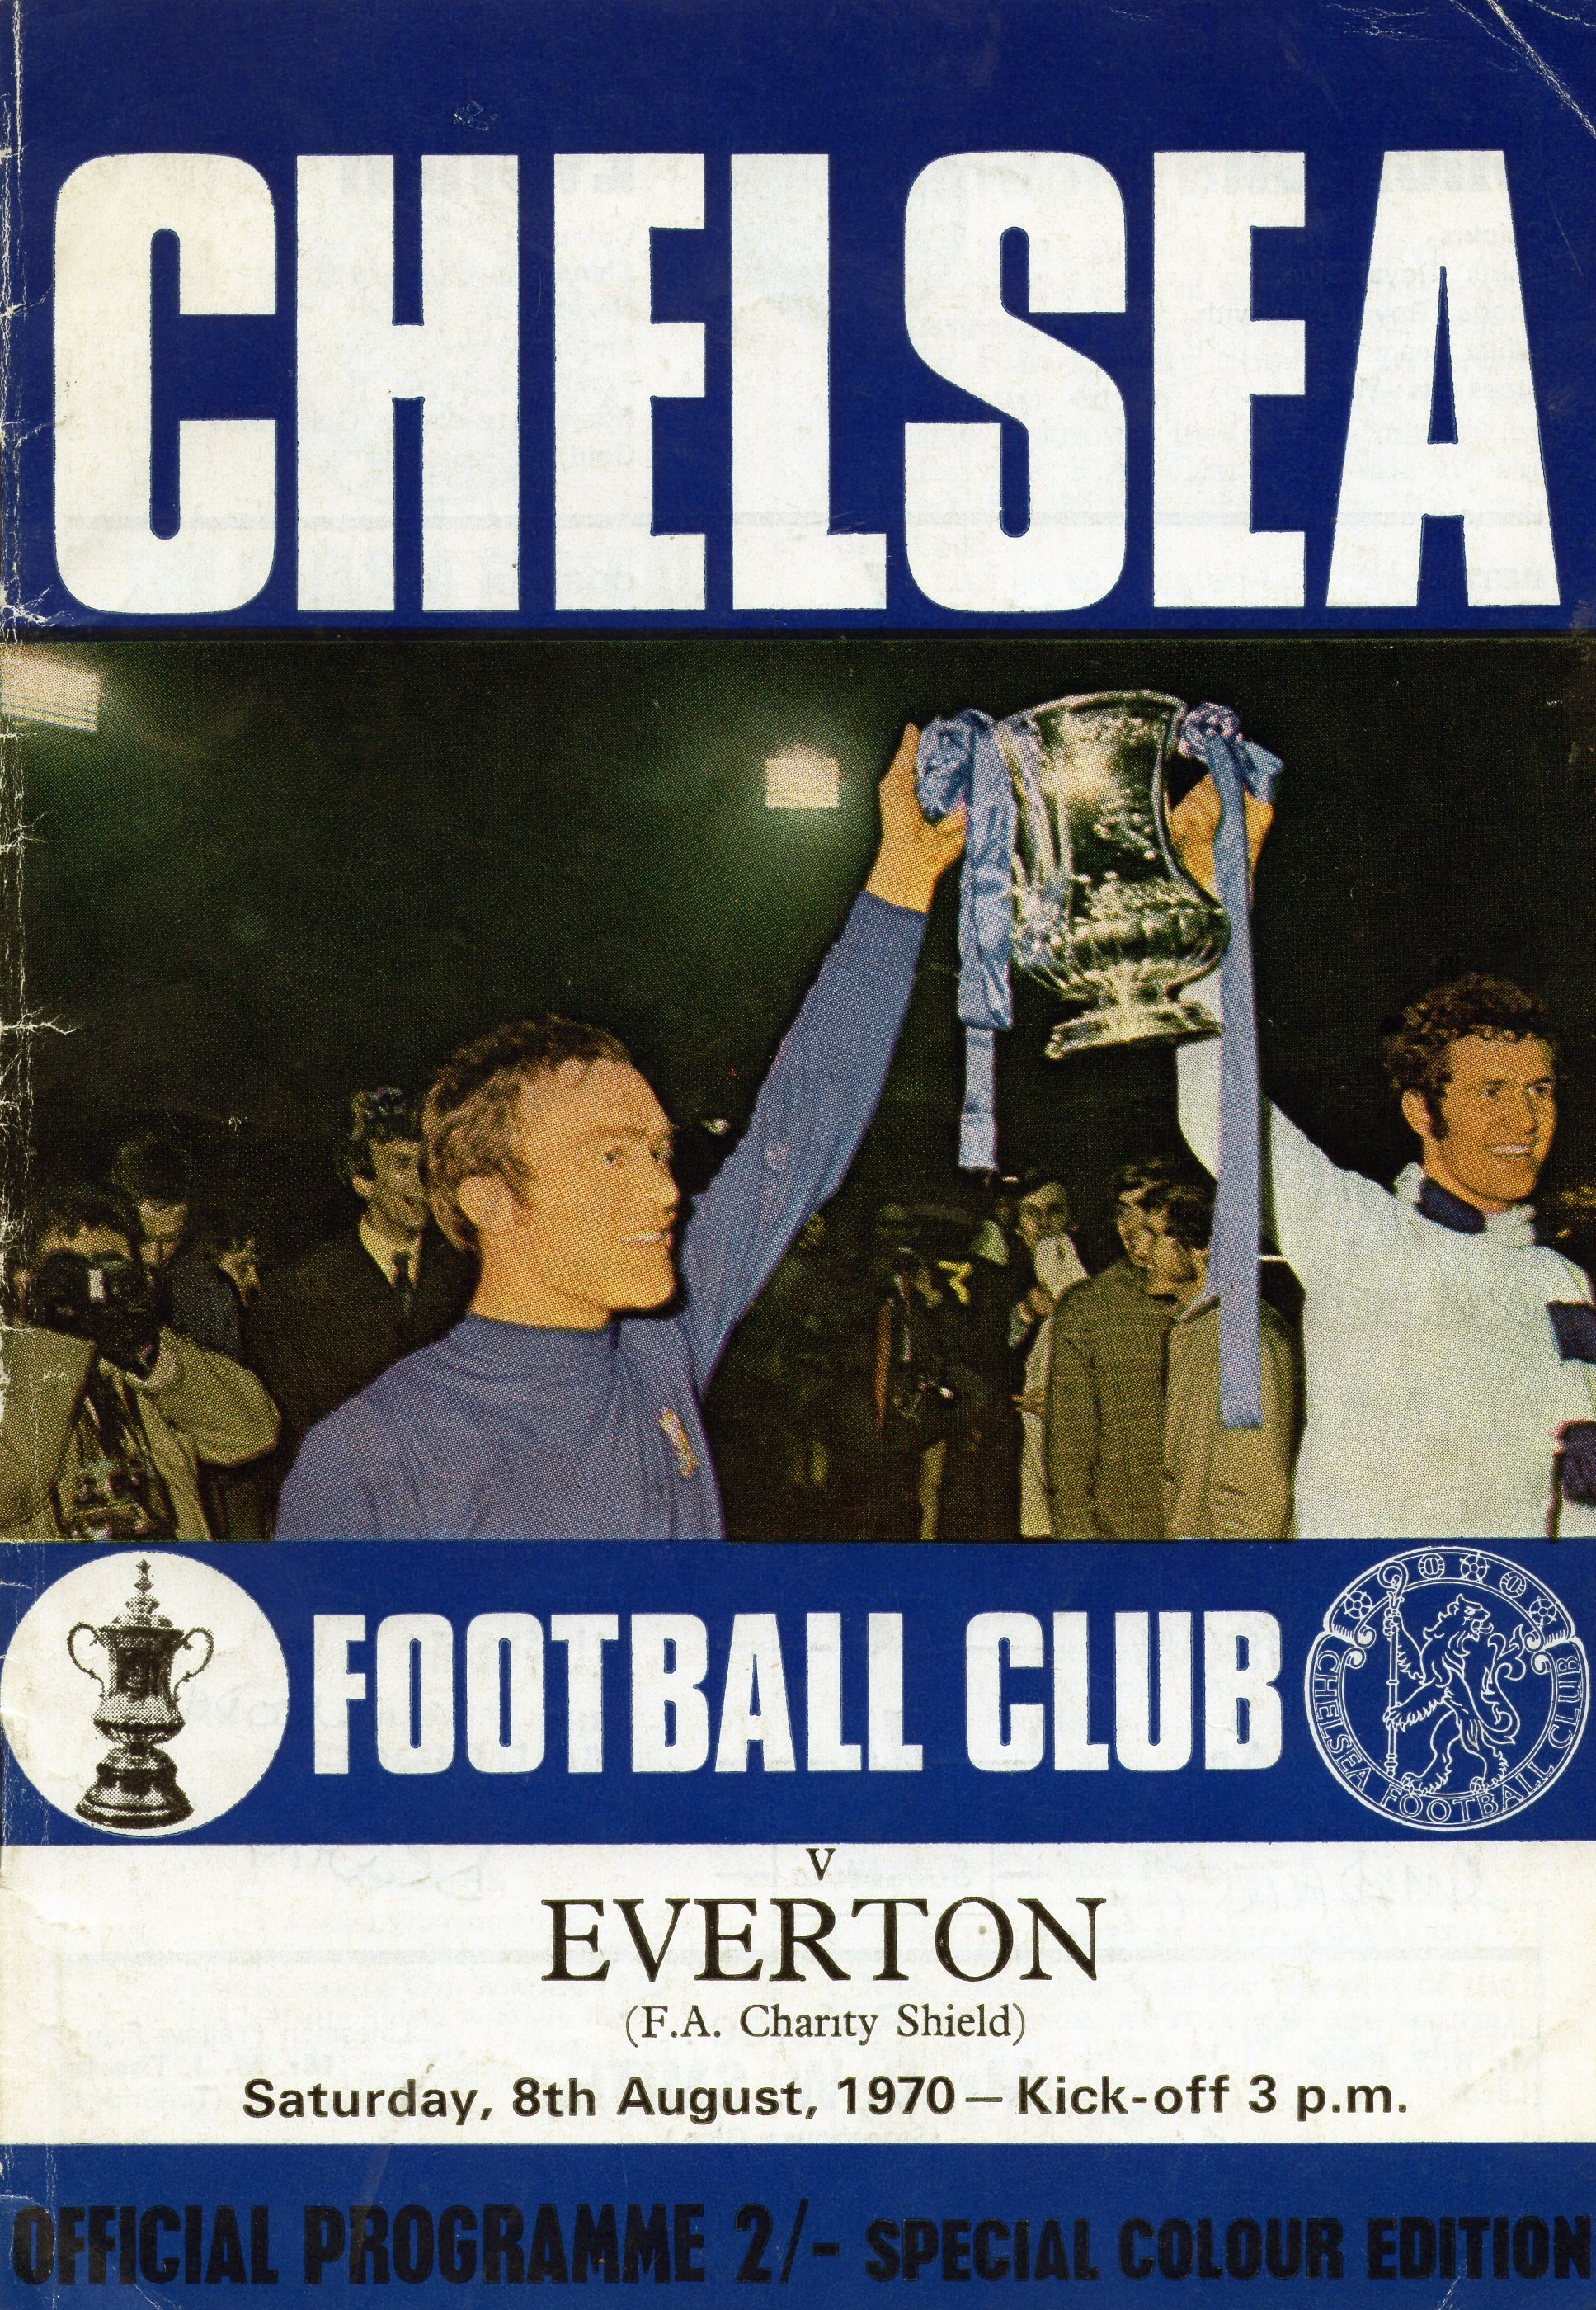 Chelsea%20v%20Everton%20charity%20shield%201970%2071.jpg